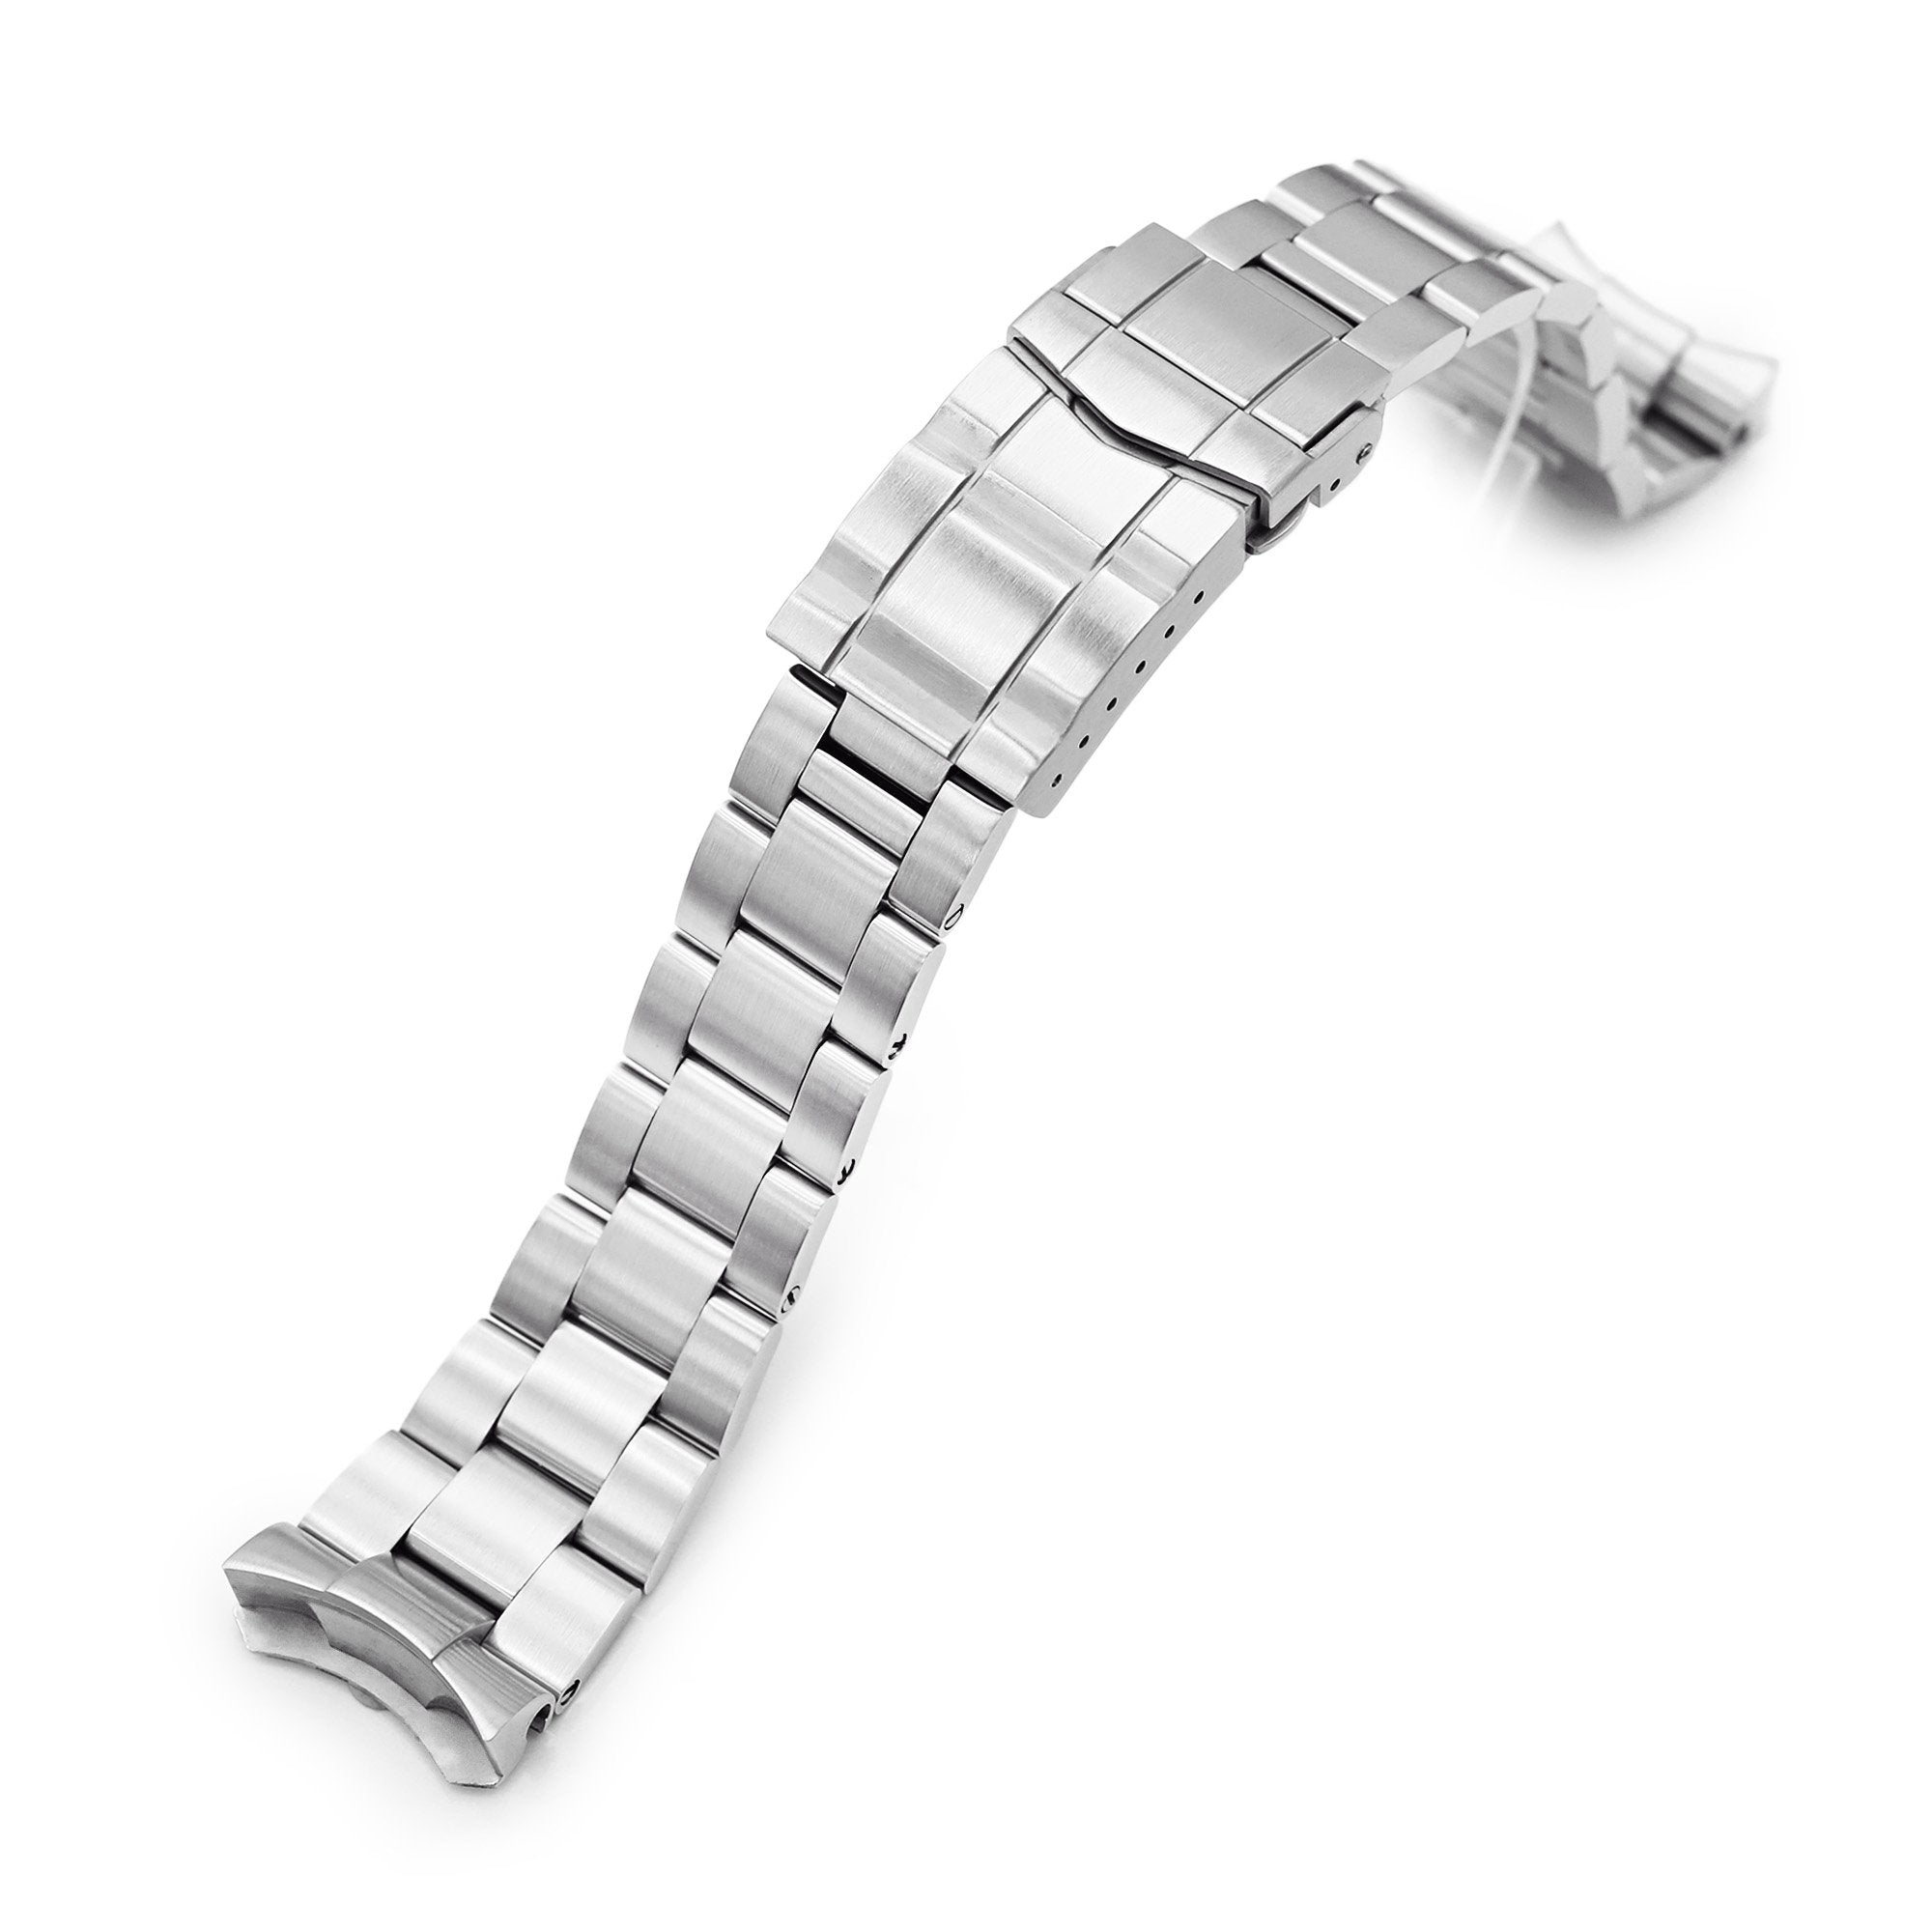 22mm Super-O Boyer 316L Stainless Steel Watch Band for Seiko 5, Brushed SUB Clasp Strapcode Watch Bands